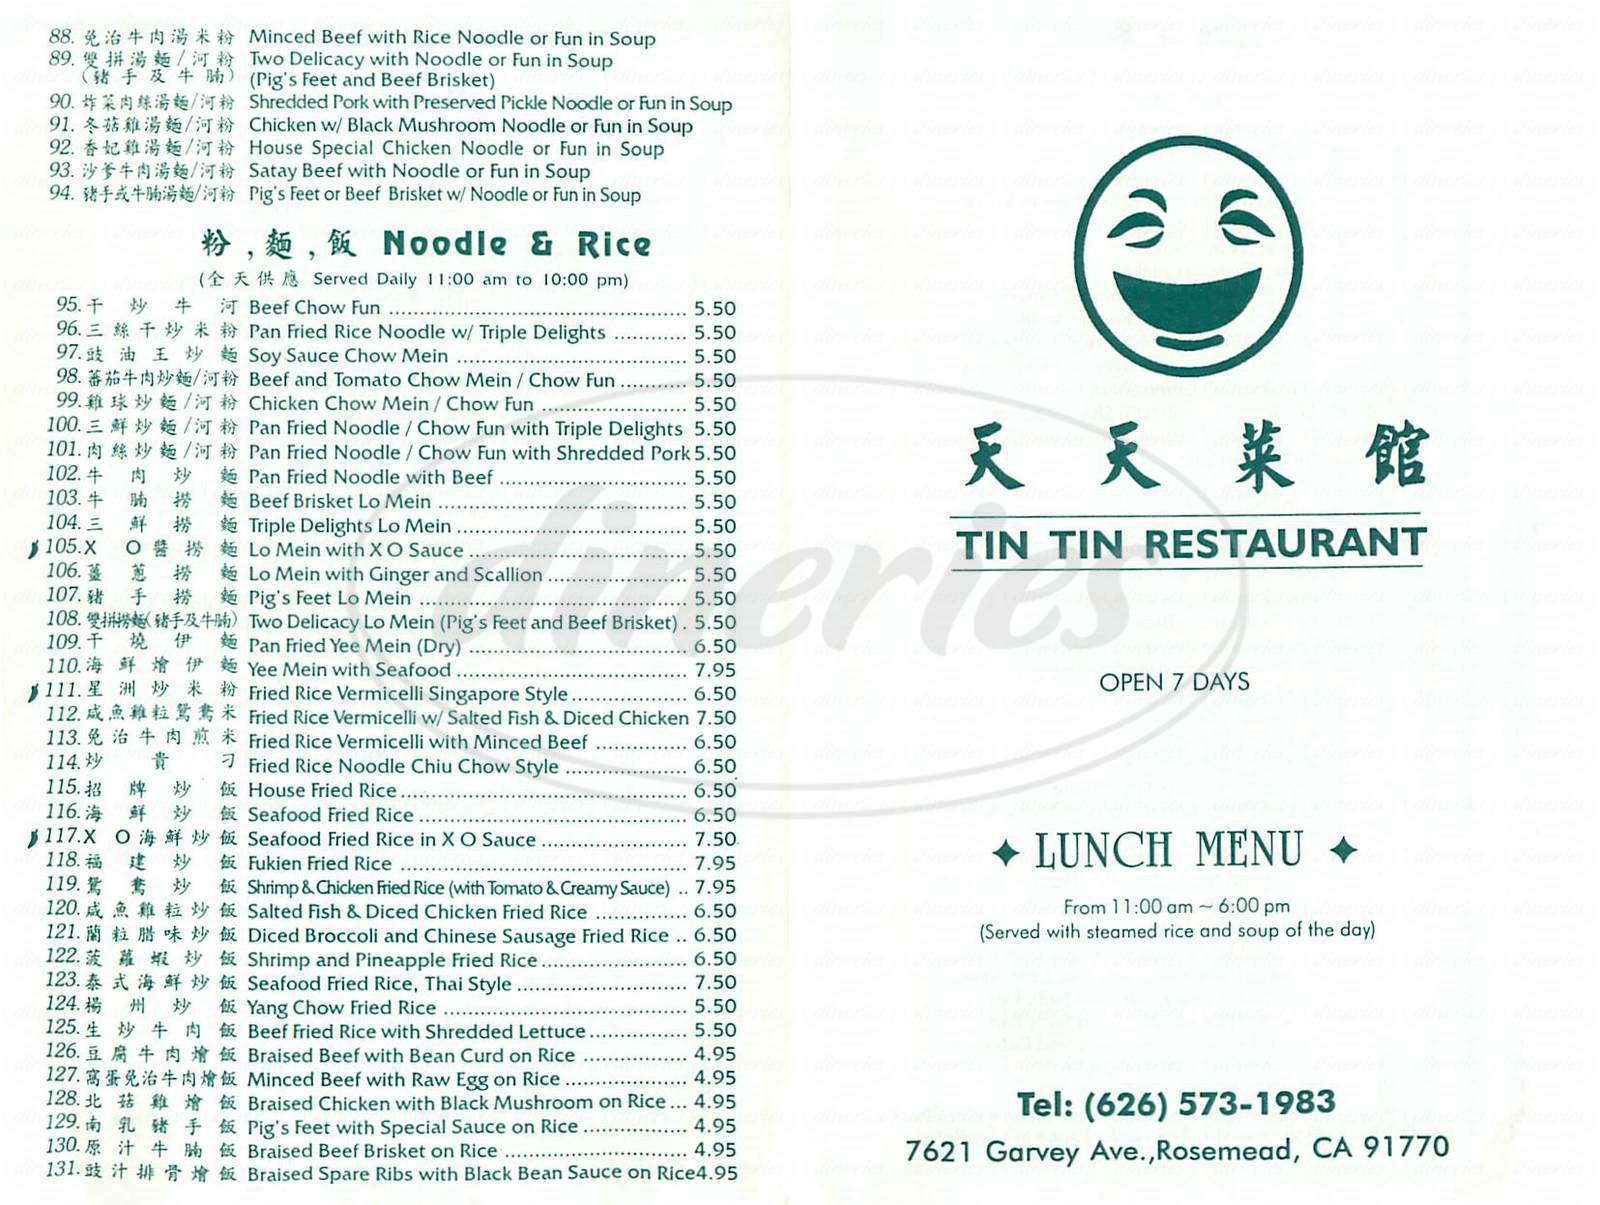 menu for Tin Tin Restaurant